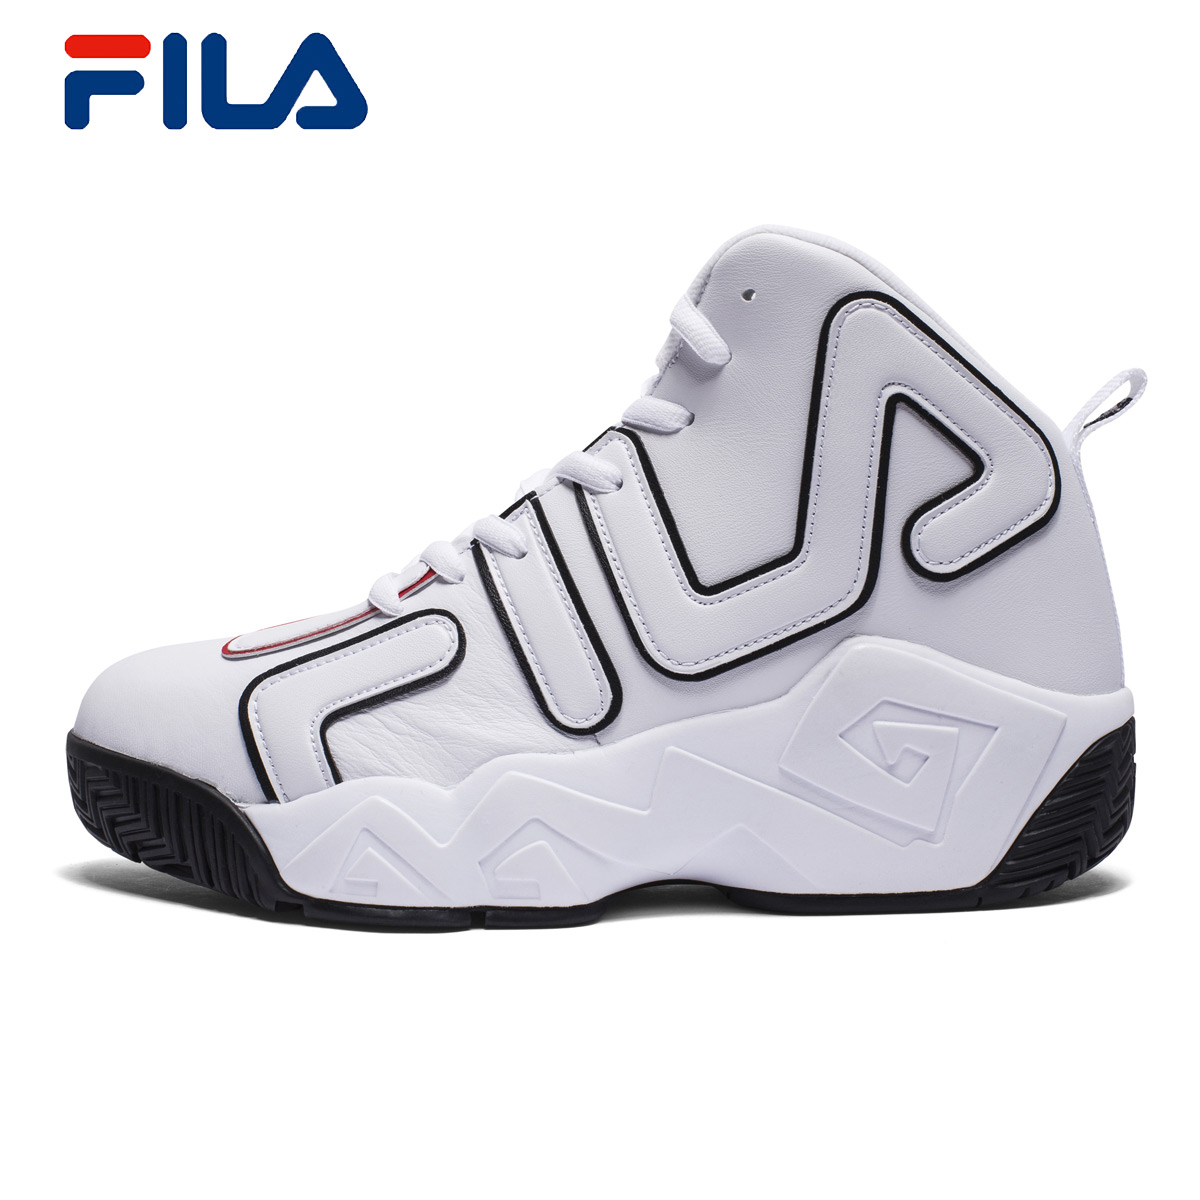 all fila shoes